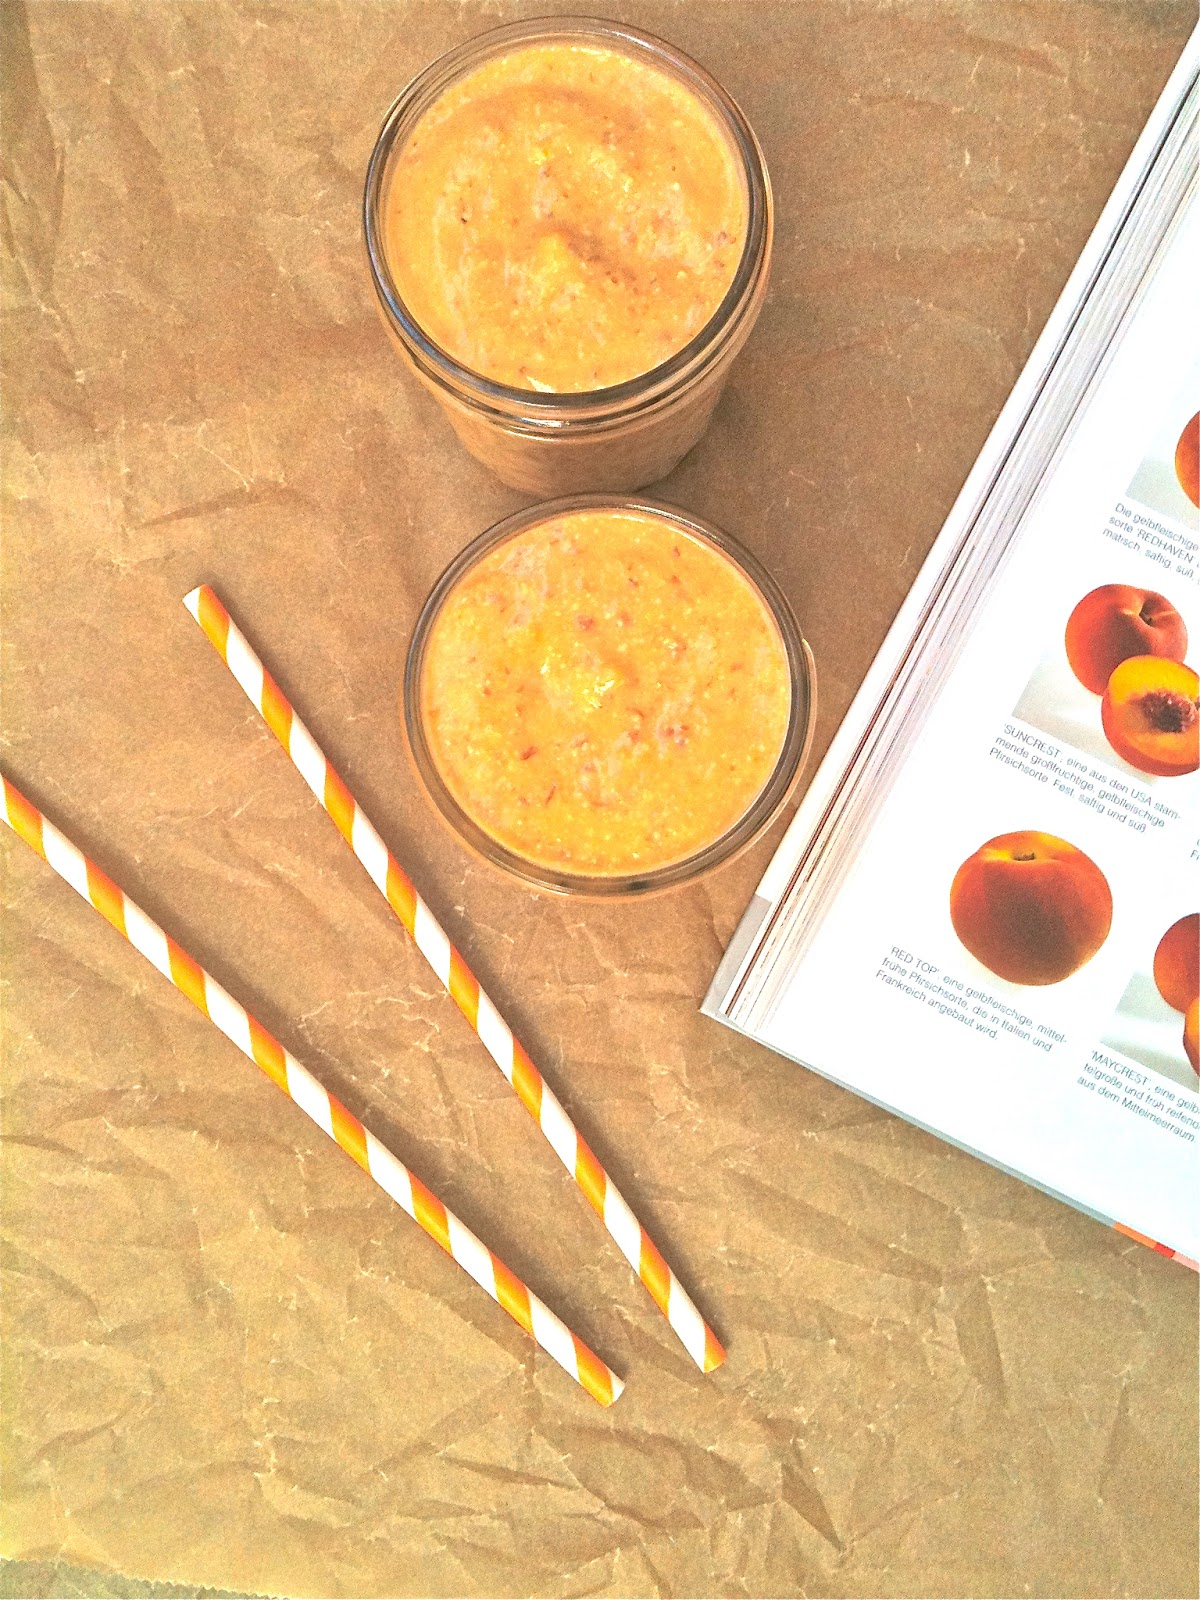 Passionately Raw! - Apricot Power - An Anti-Cancer Smoothie